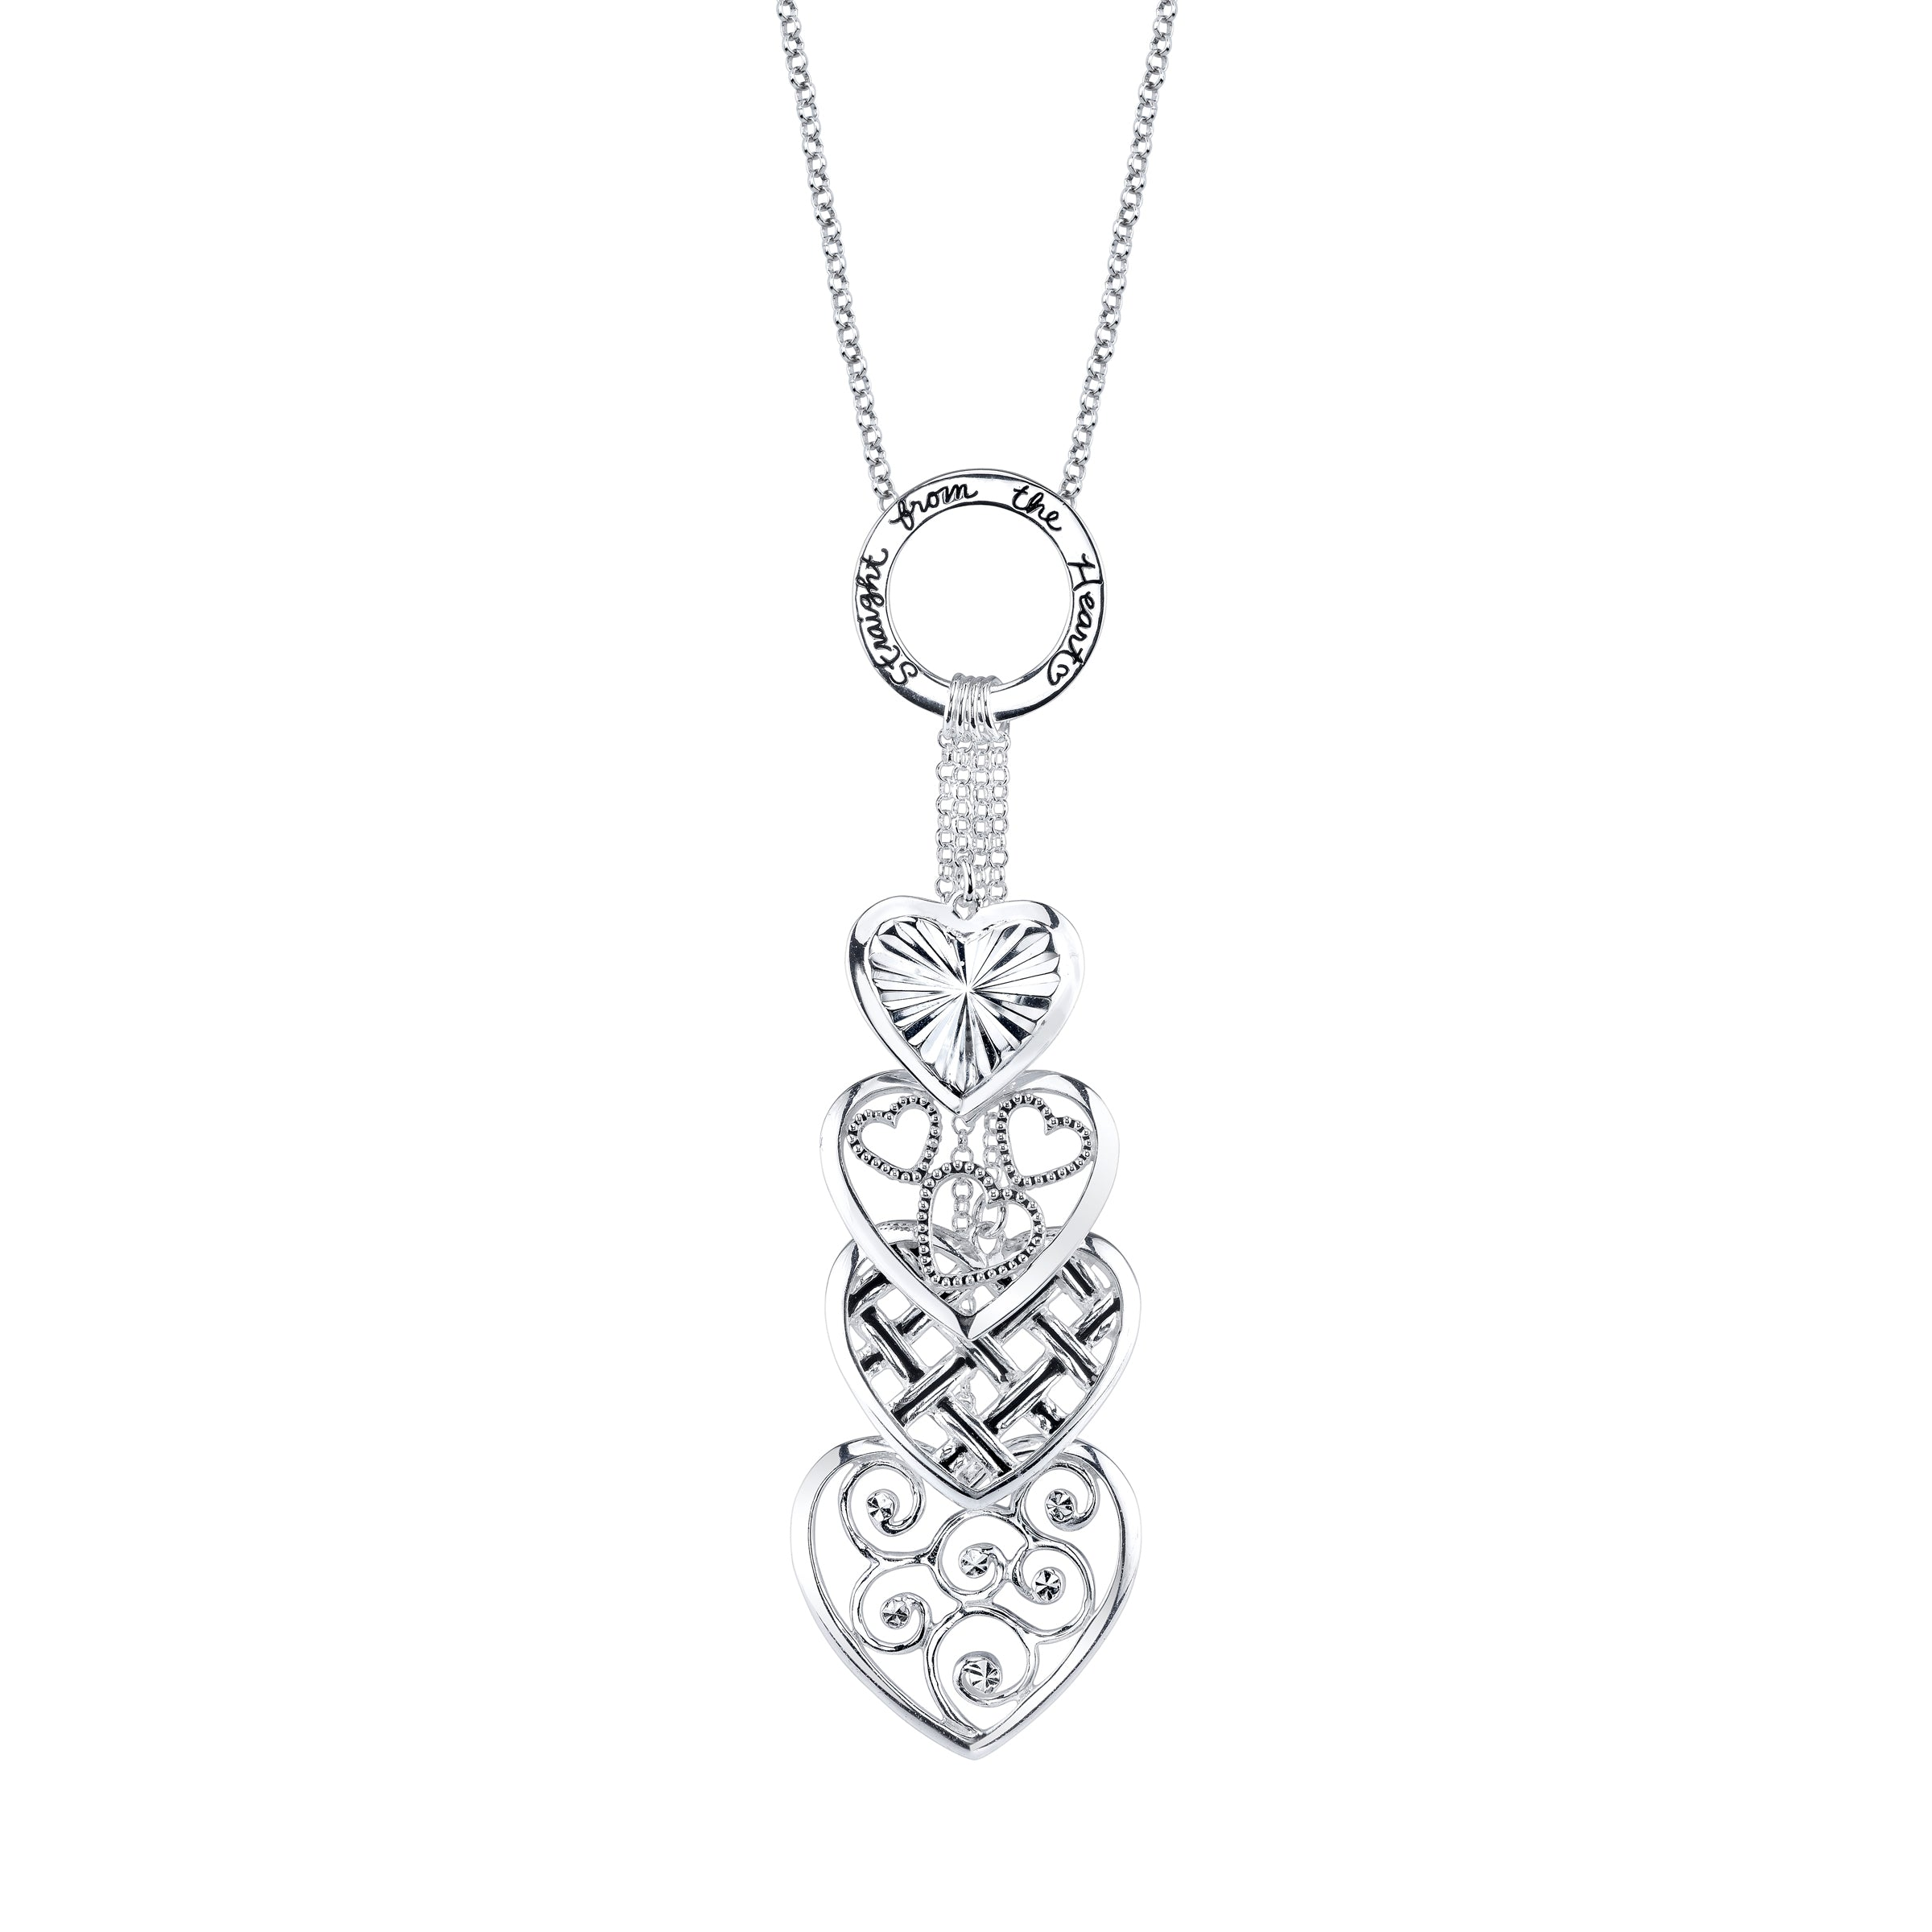 Four Charm Heart Necklace, Sterling Silver